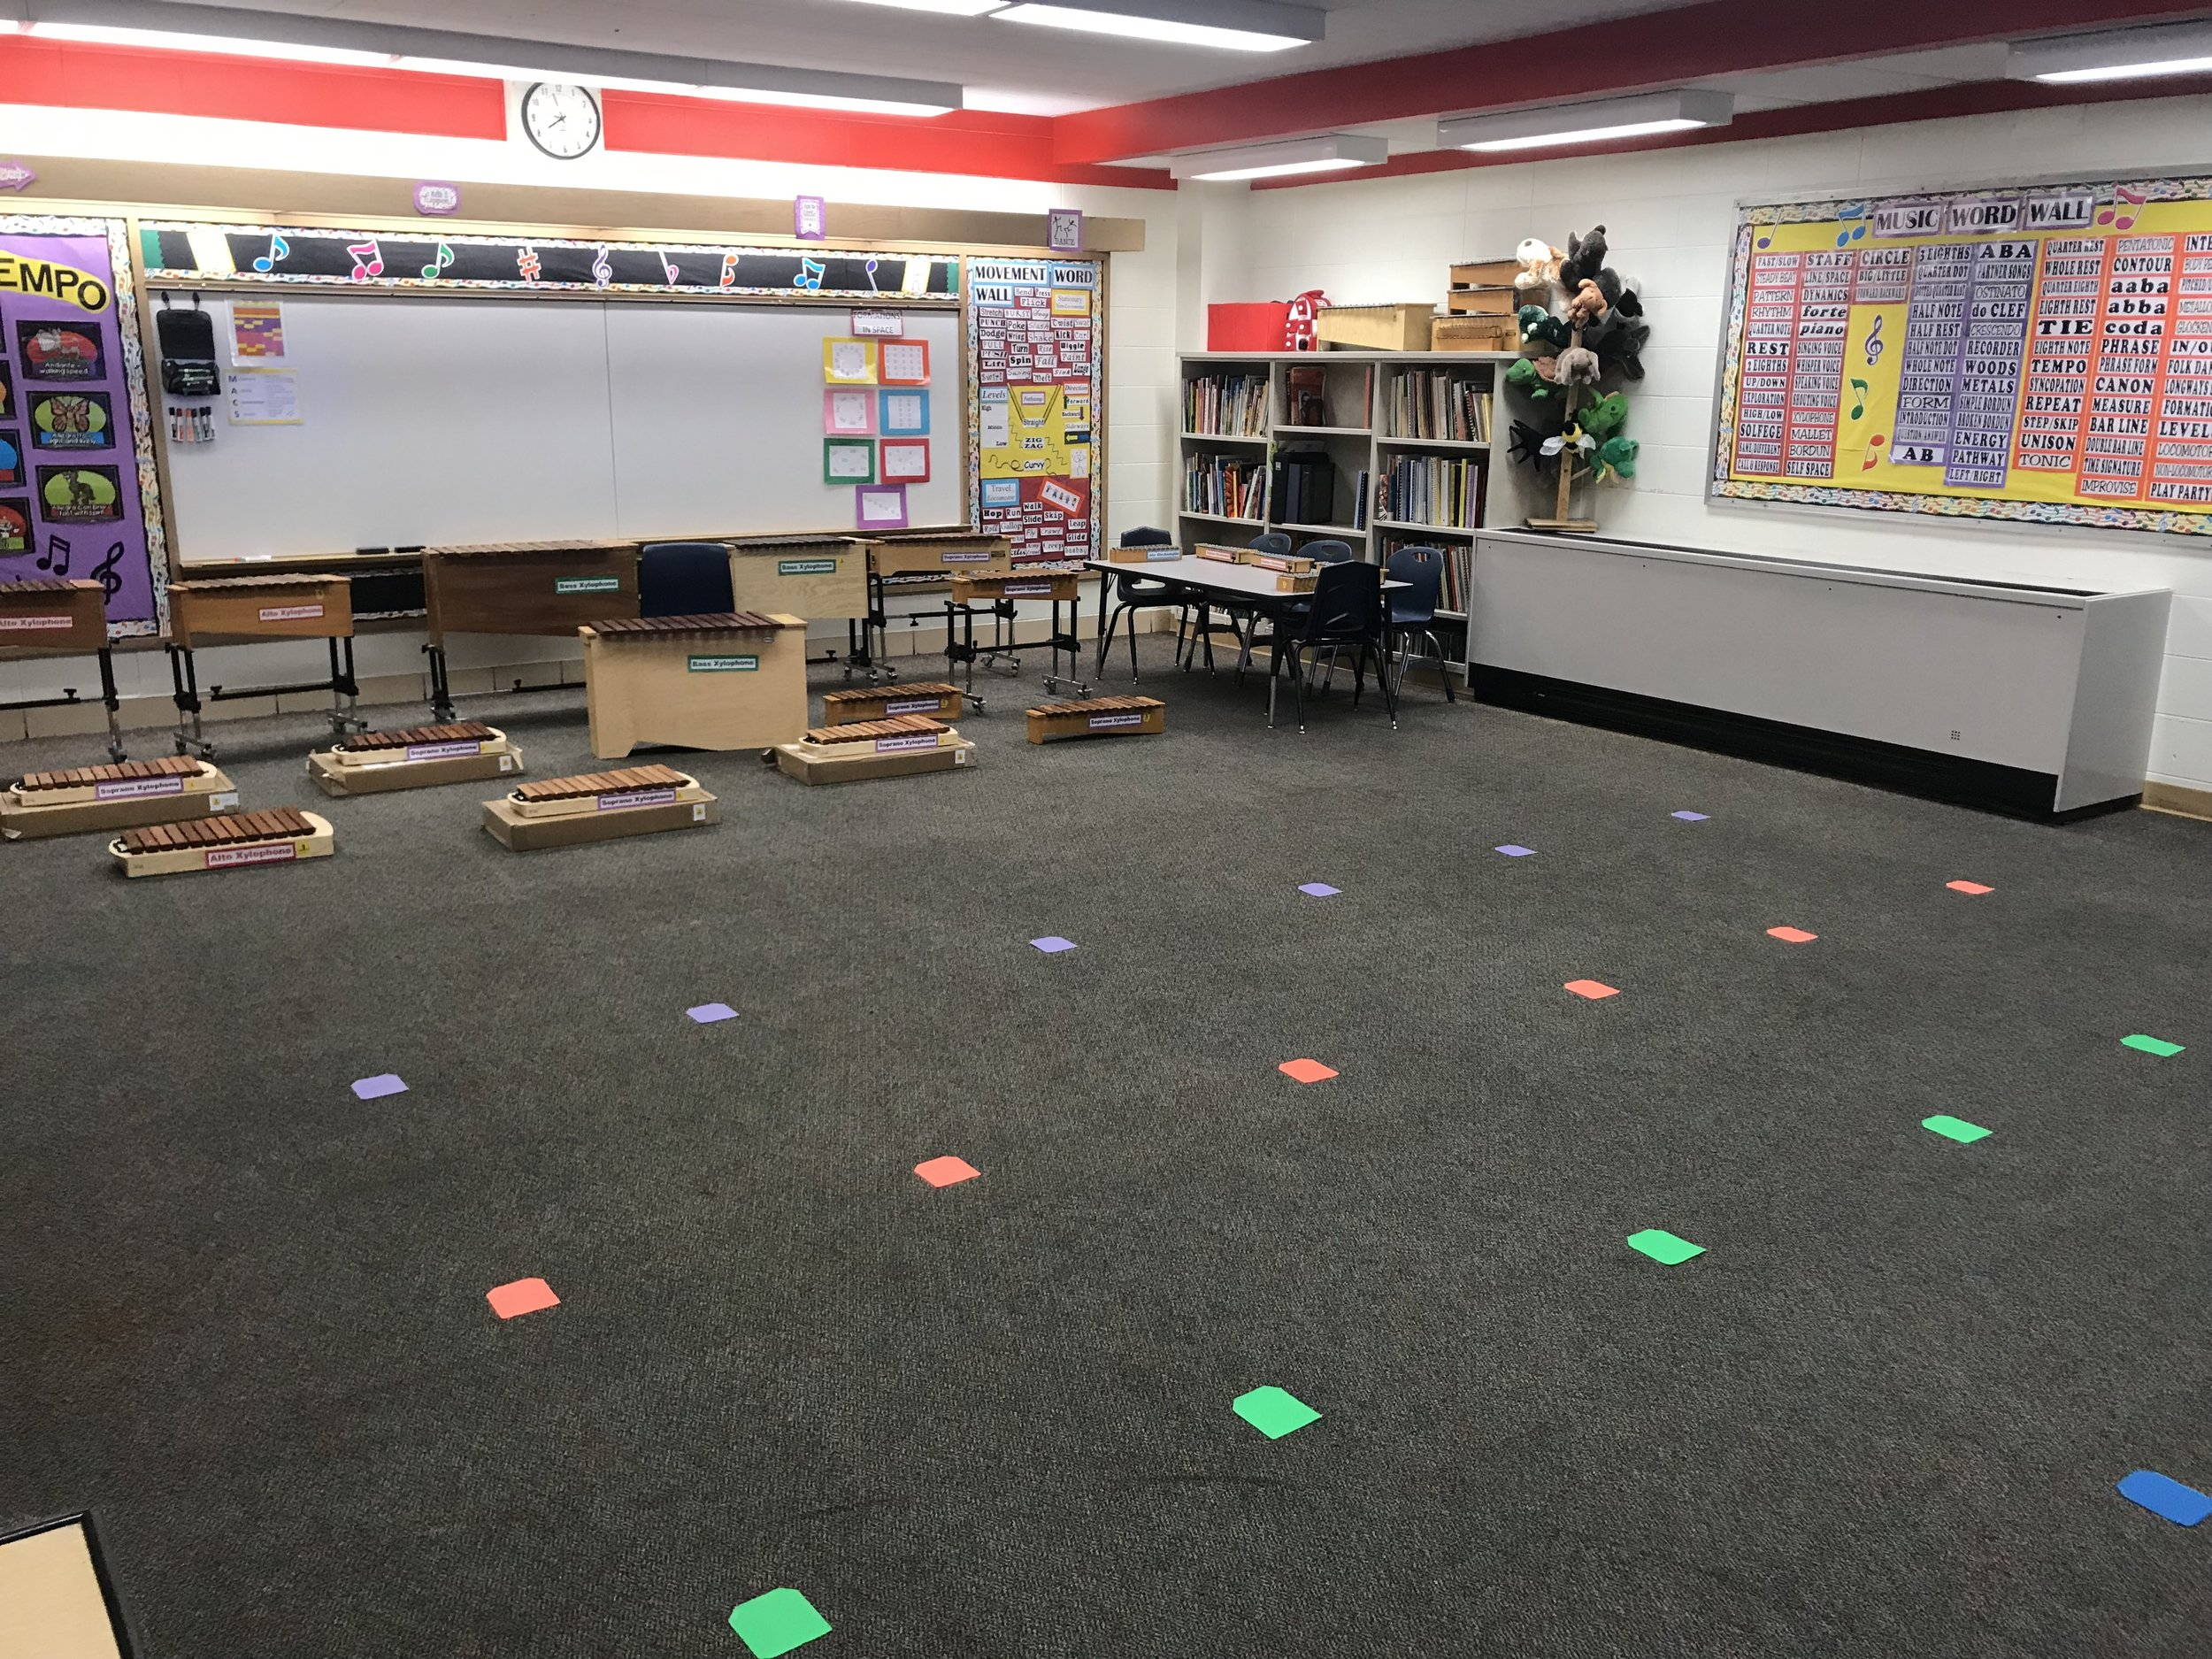 This is a view of my room from the door looking to the back of the room. The sit spots on the floor are shaped like pockets and they velcro to the carpet!